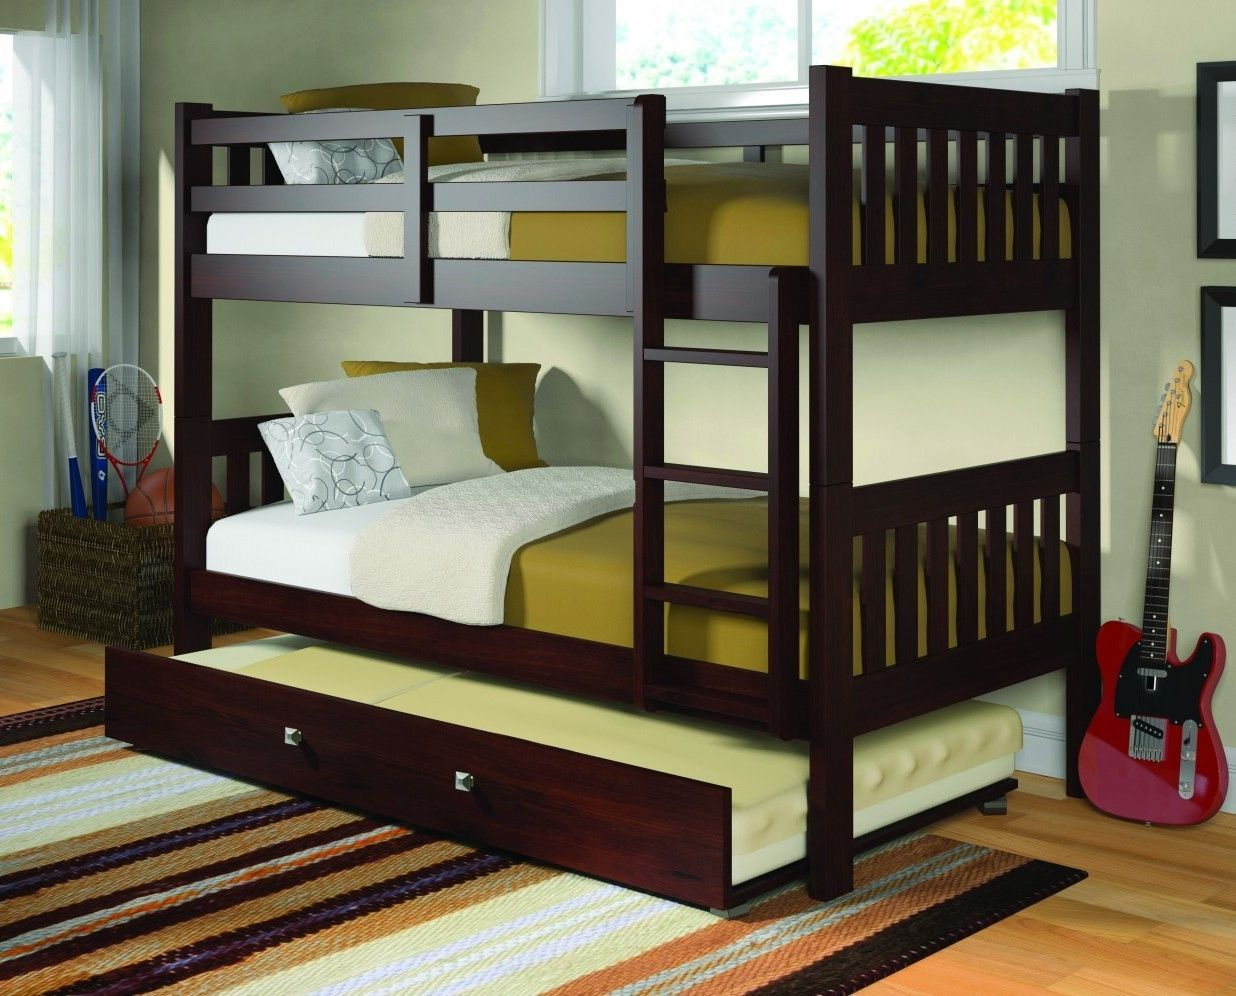 10 Tips For Selecting The Best Bunk Bed For Your Kids   Bunk Bed Buying  Guide